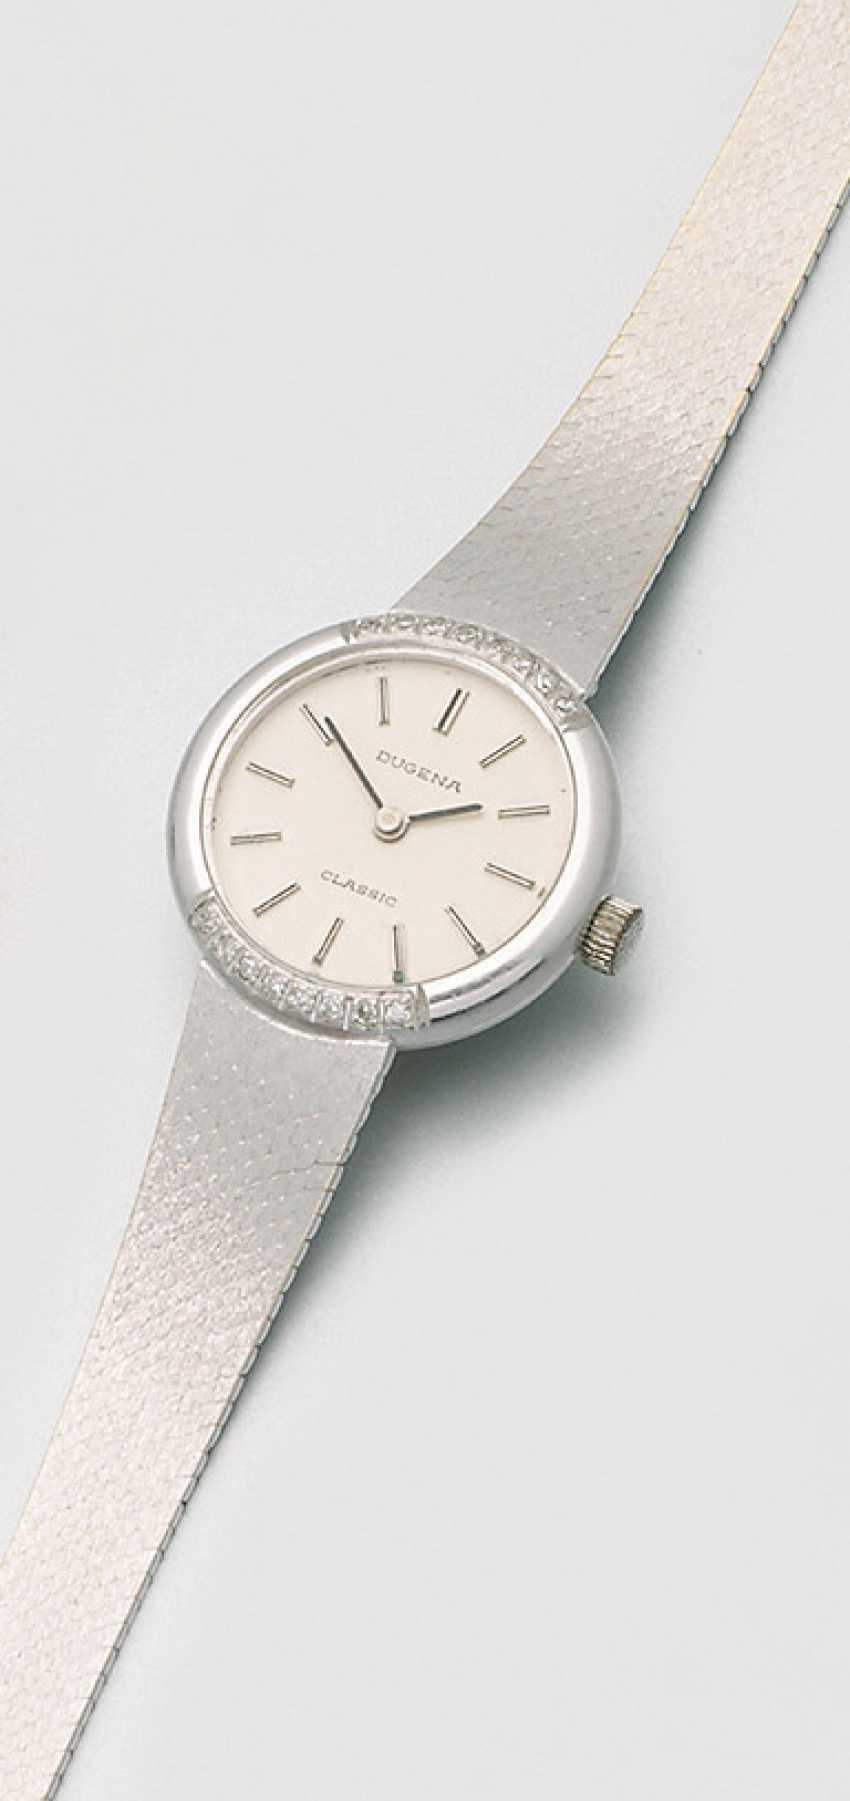 Elegant ladies wrist watch by Dugena - photo 1